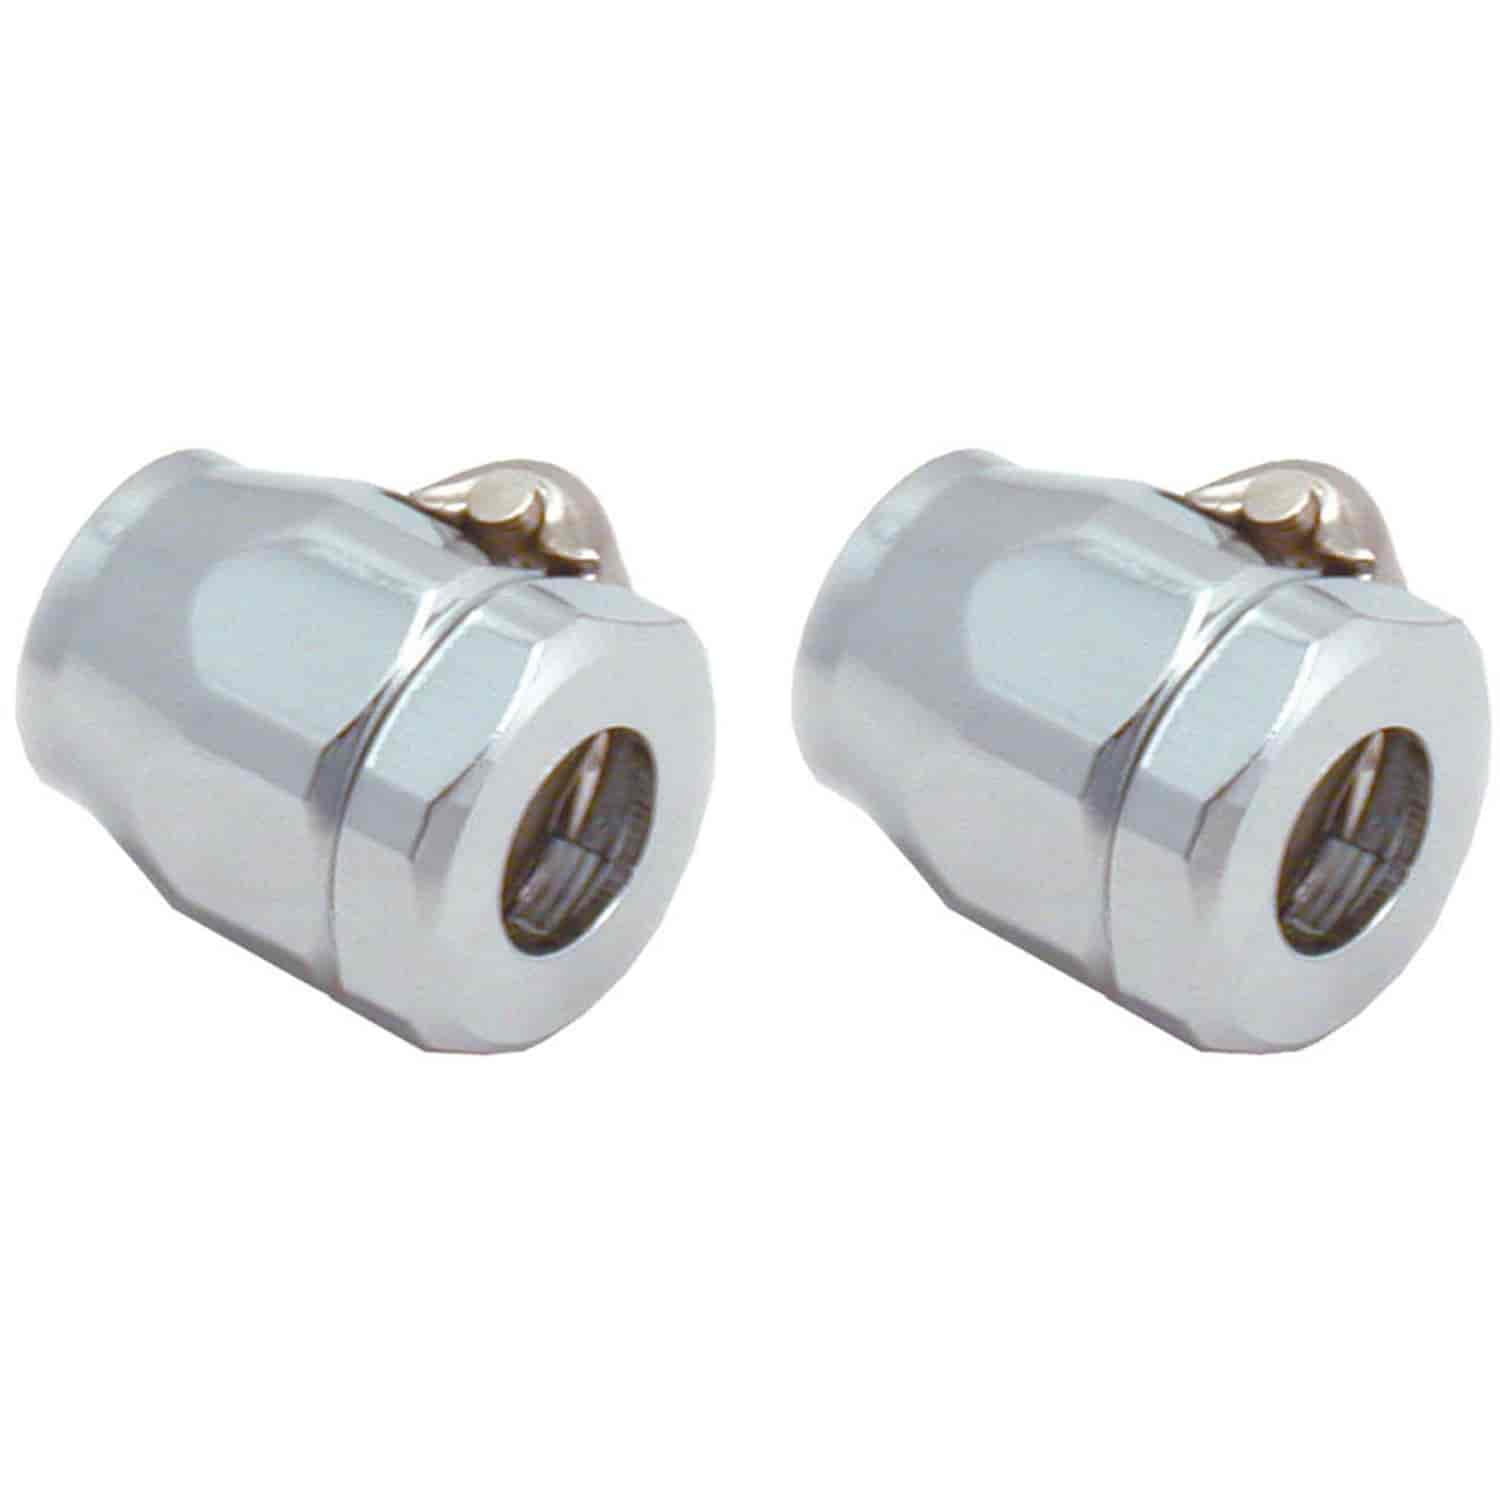 Spectre 2168 - Spectre Magna-Clamp Hose Fittings